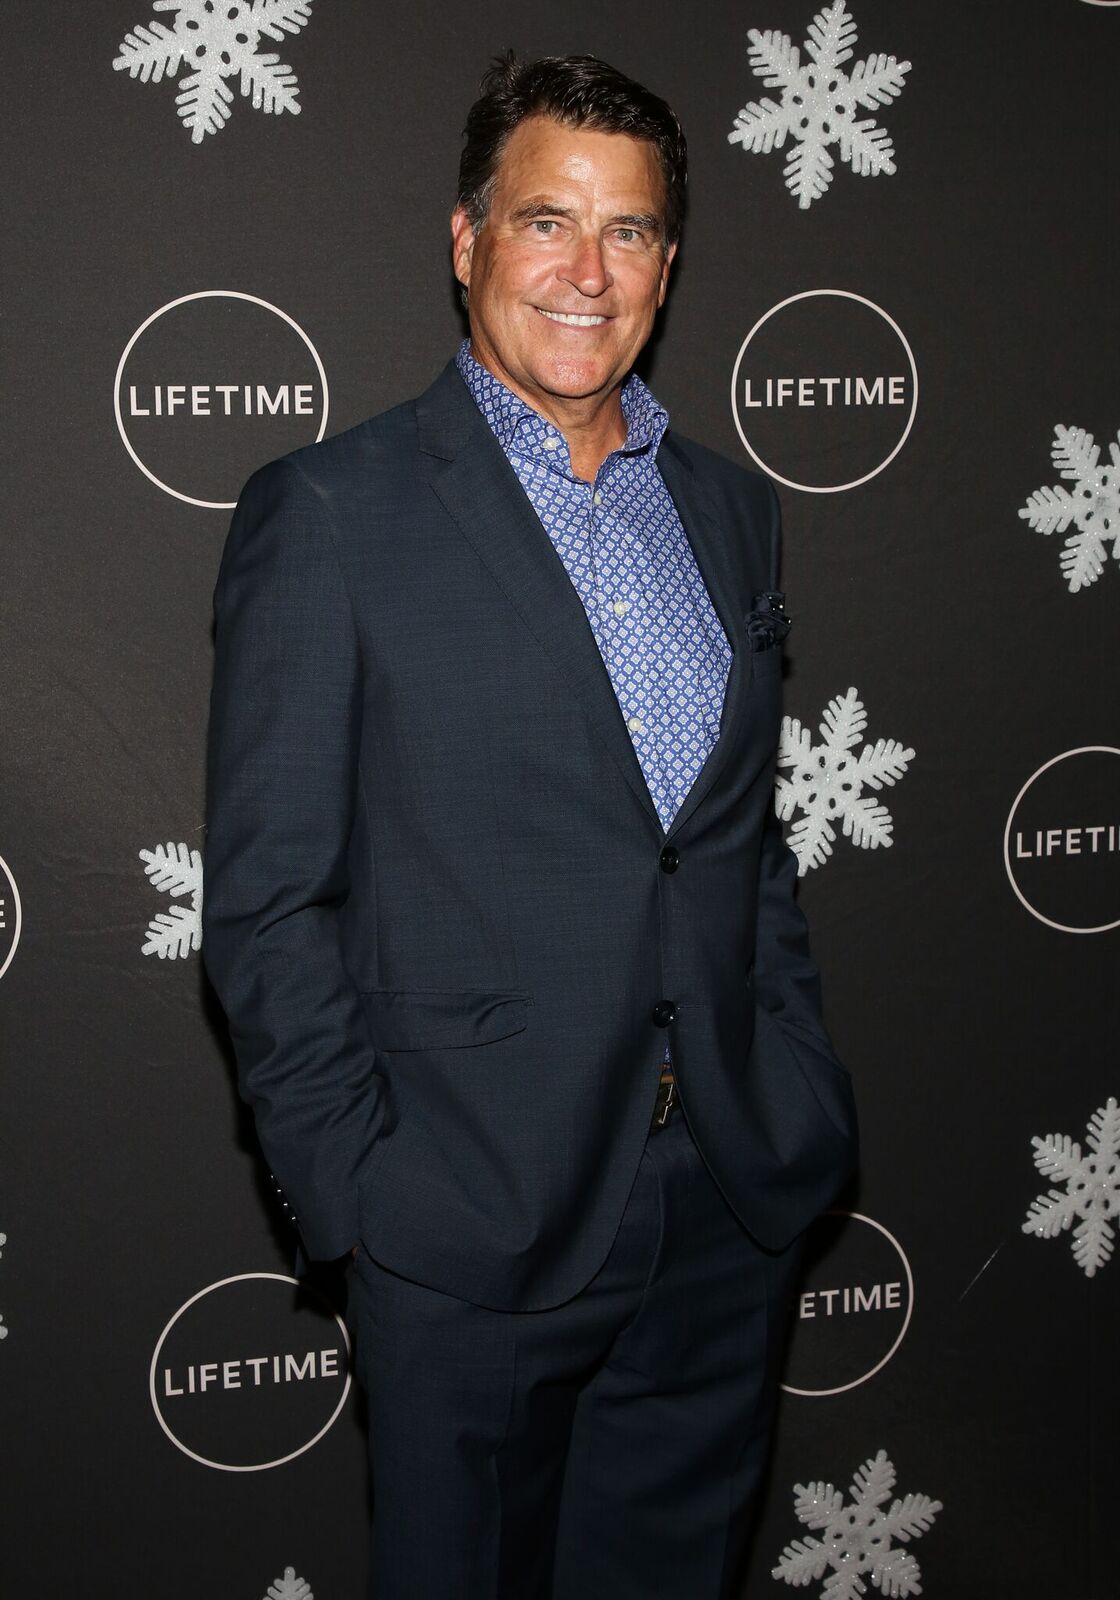 """Ted McGinley at the """"It's A Wonderful Lifetime"""" Holiday Party in Los Angeles in, 2019 